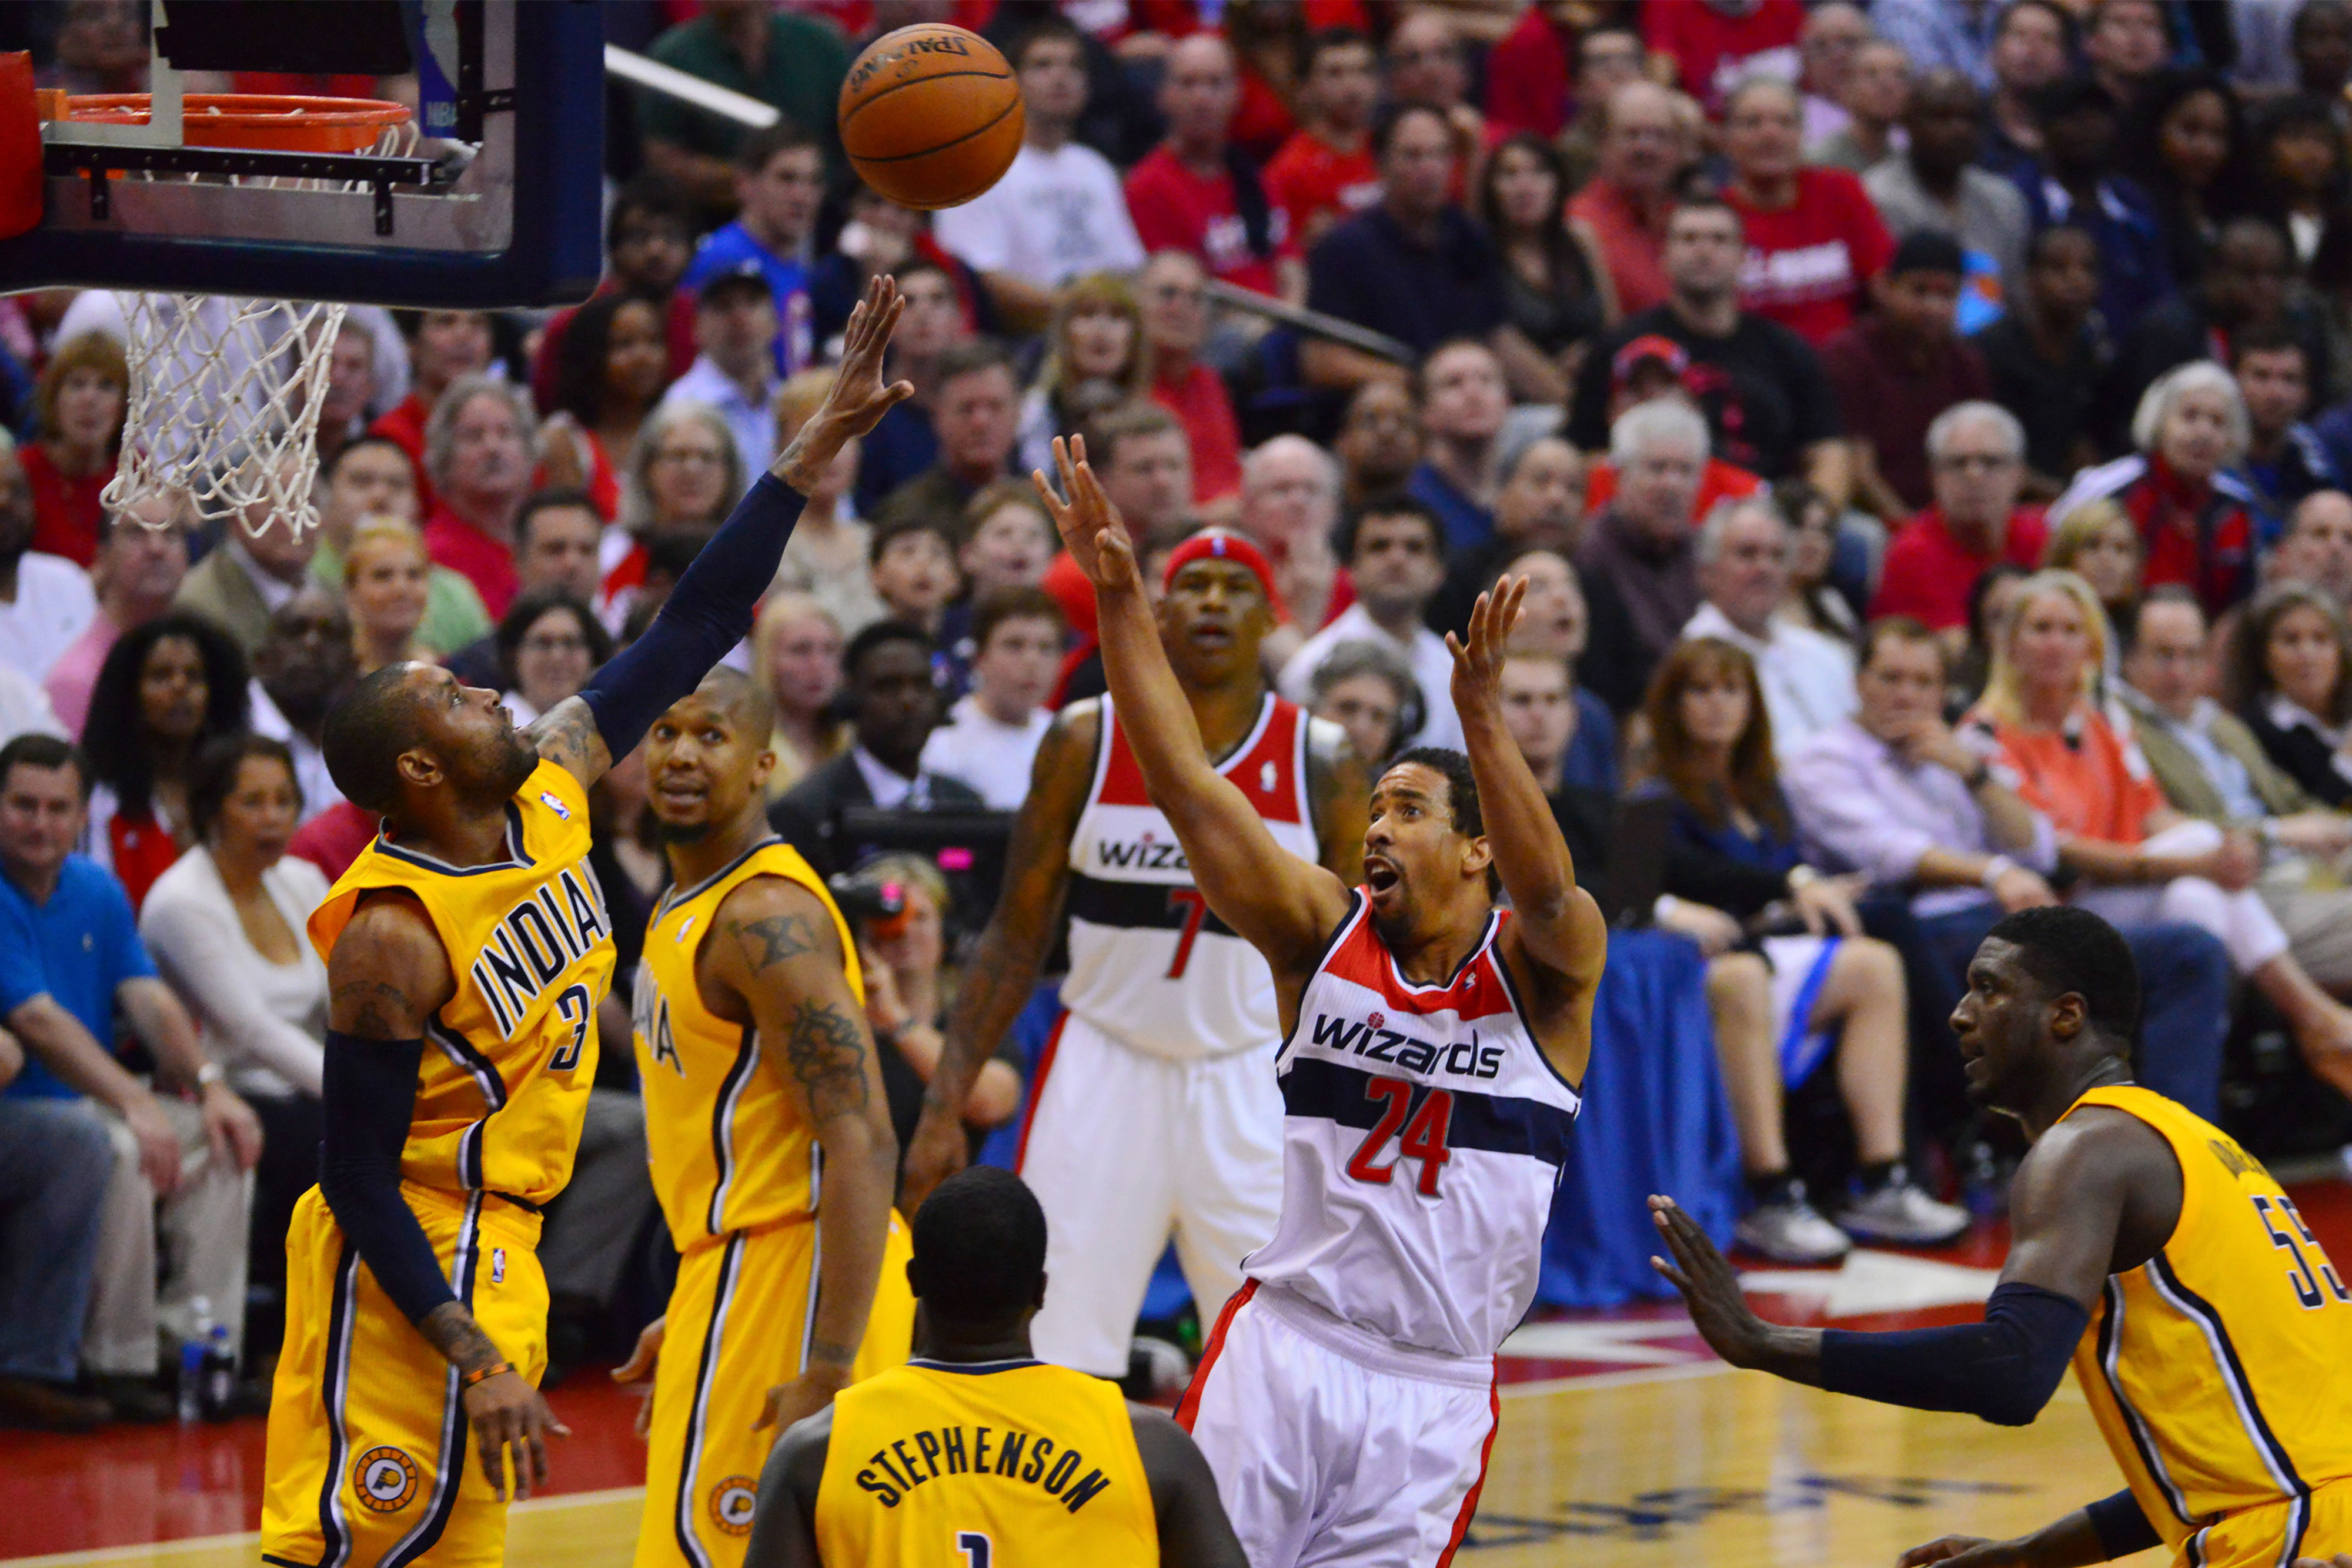 Former Runnin' Utes point guard Andre Miller (24), now with the Washington Wizards of the NBA, is a definite candidate for Utah's Mount Rushmore of basketball.